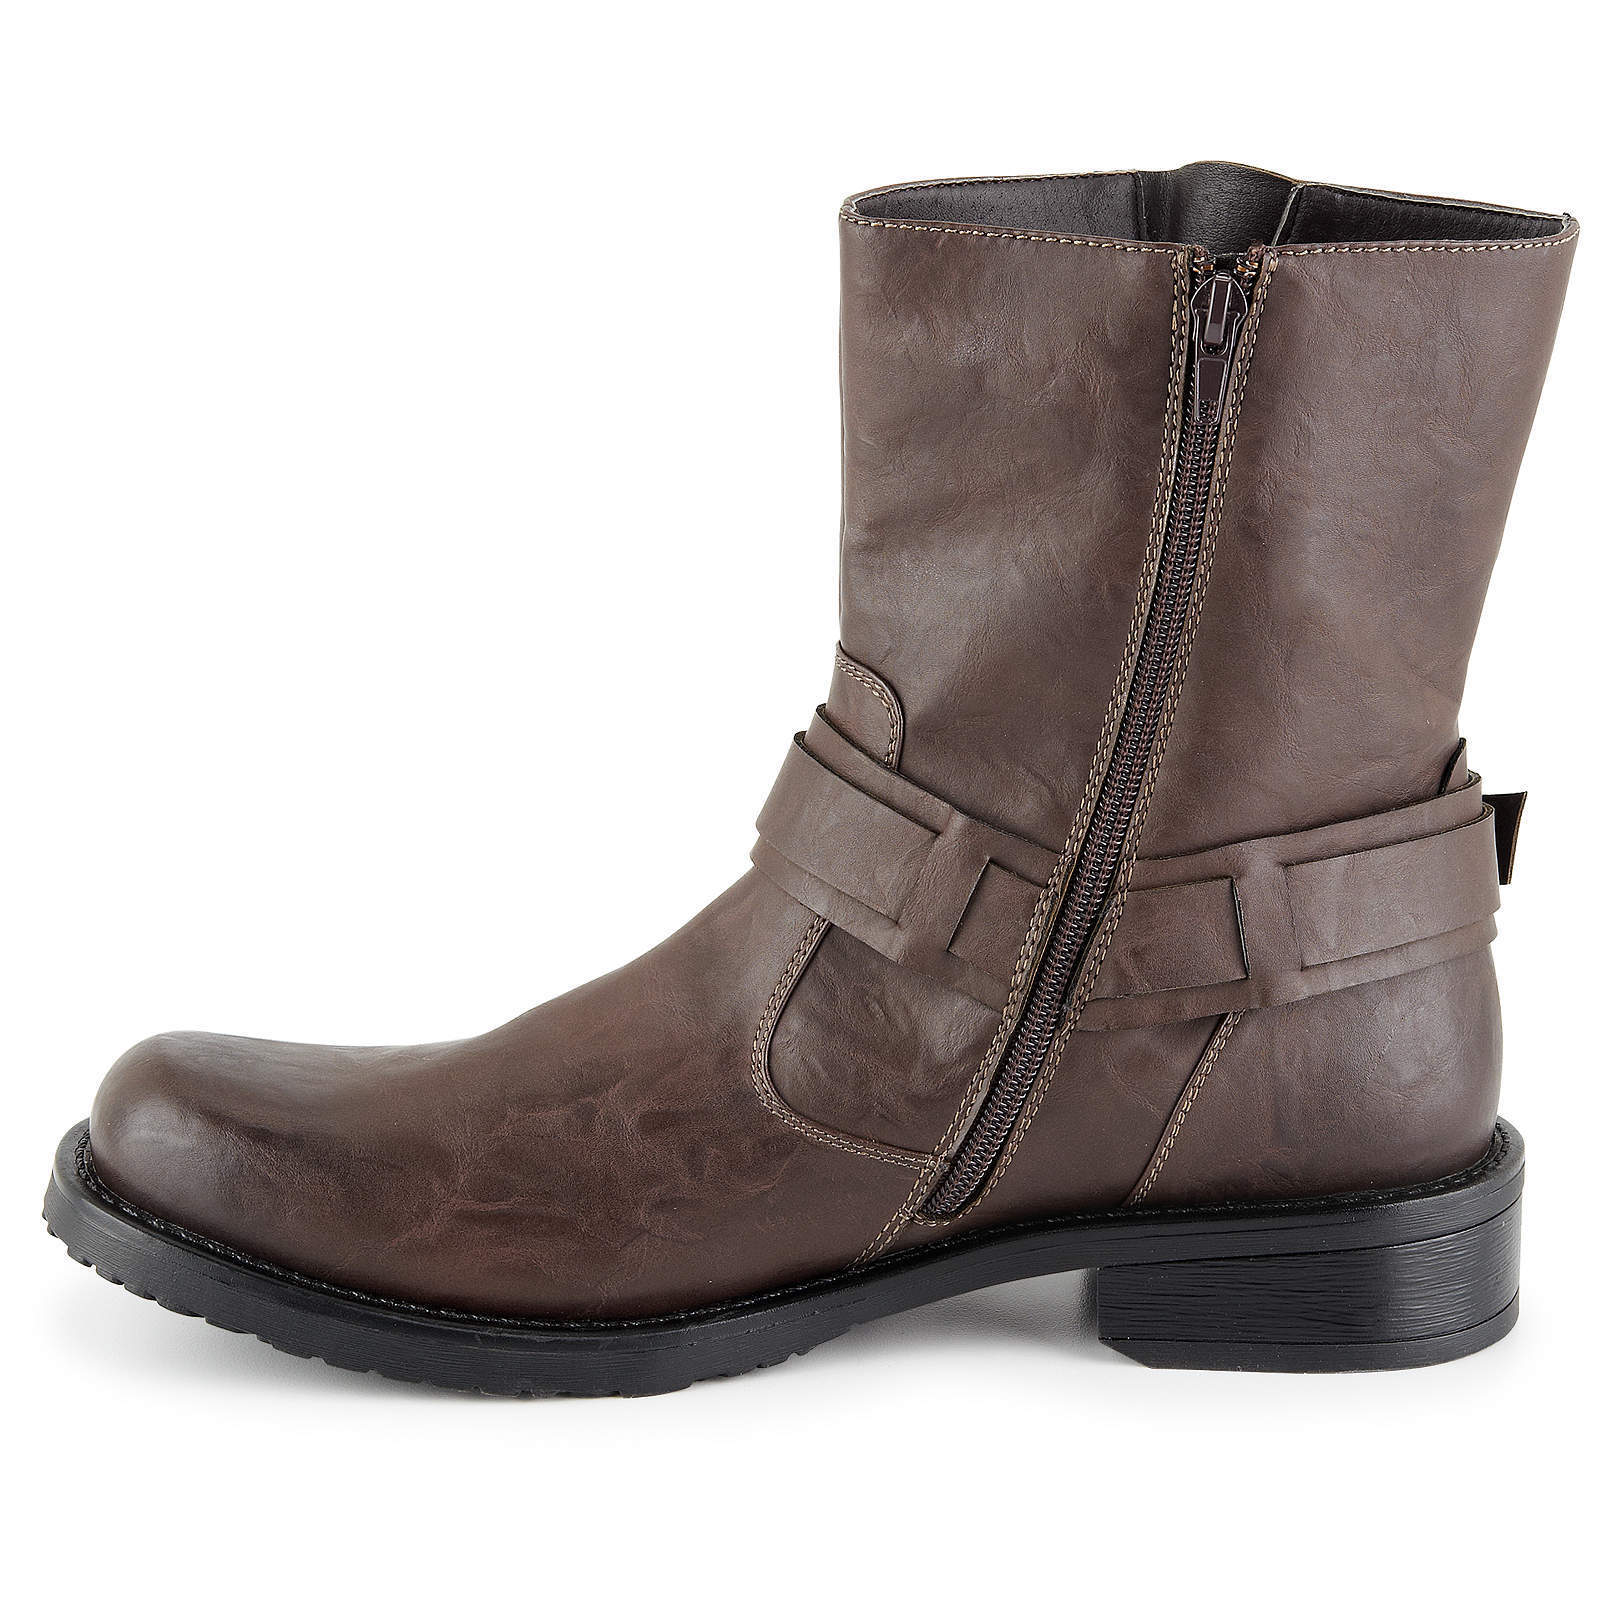 c635059ad37e Day-Five-Mens-Easy-Rider-Harness-Motorcycle-Boots -7c68ca7b-11e3-4a70-b36d-663f6121d021.jpg